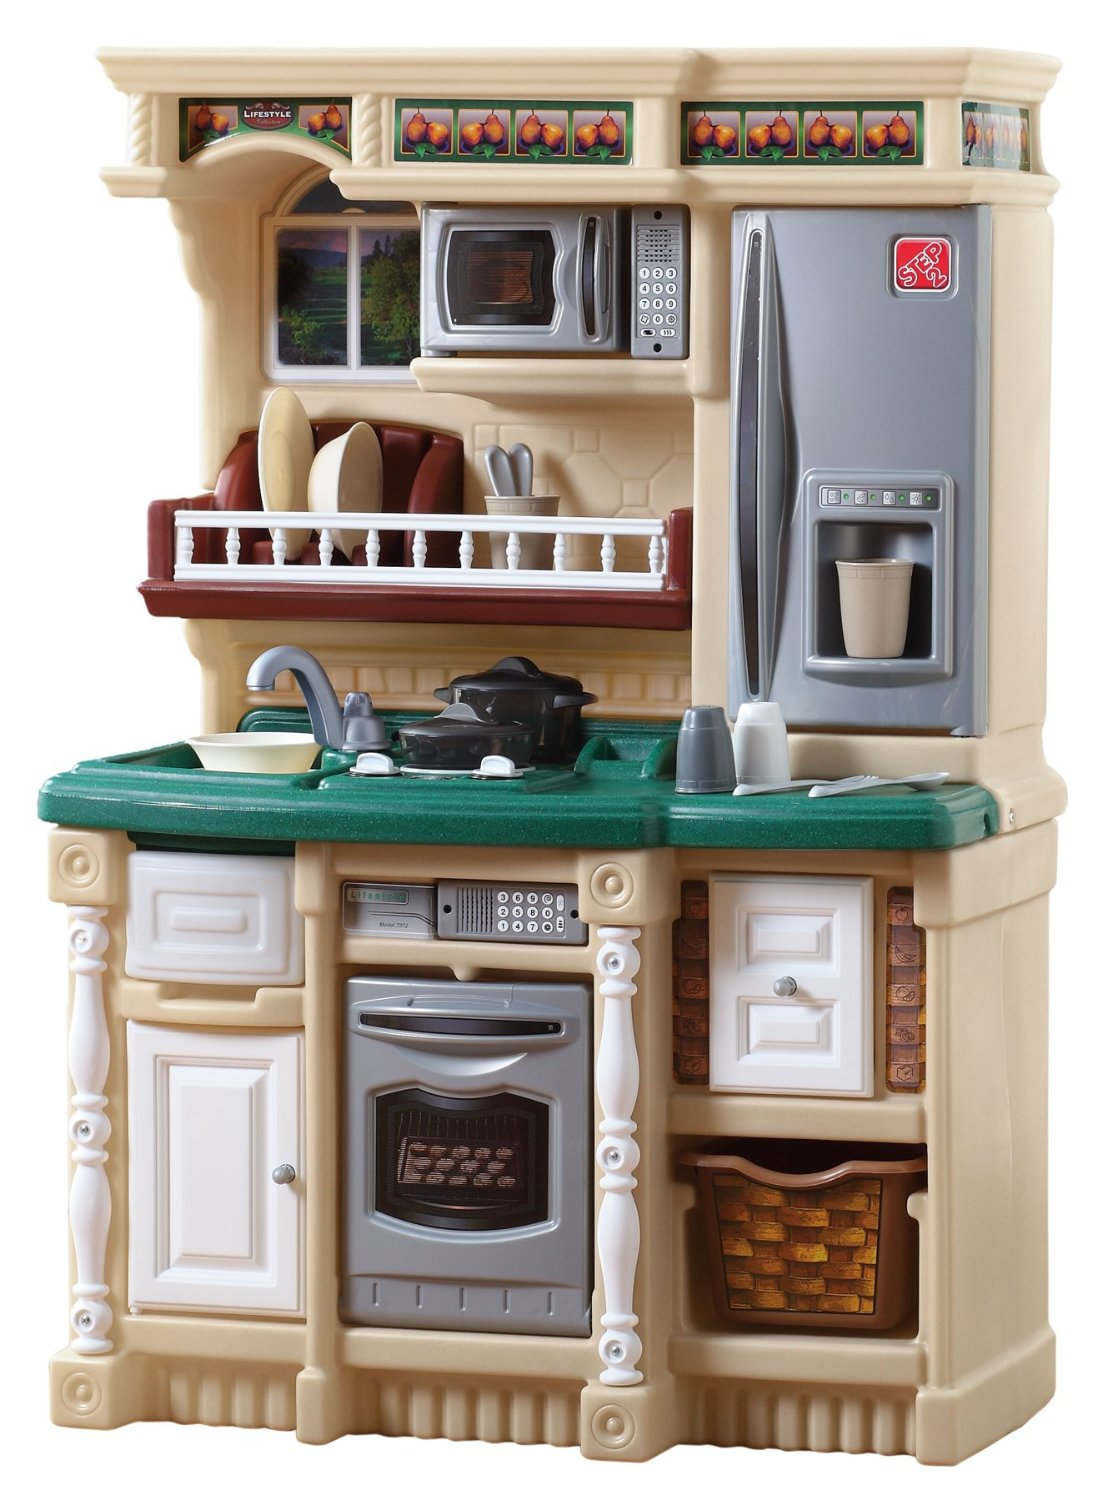 Looking for reasonably priced toy kitchen